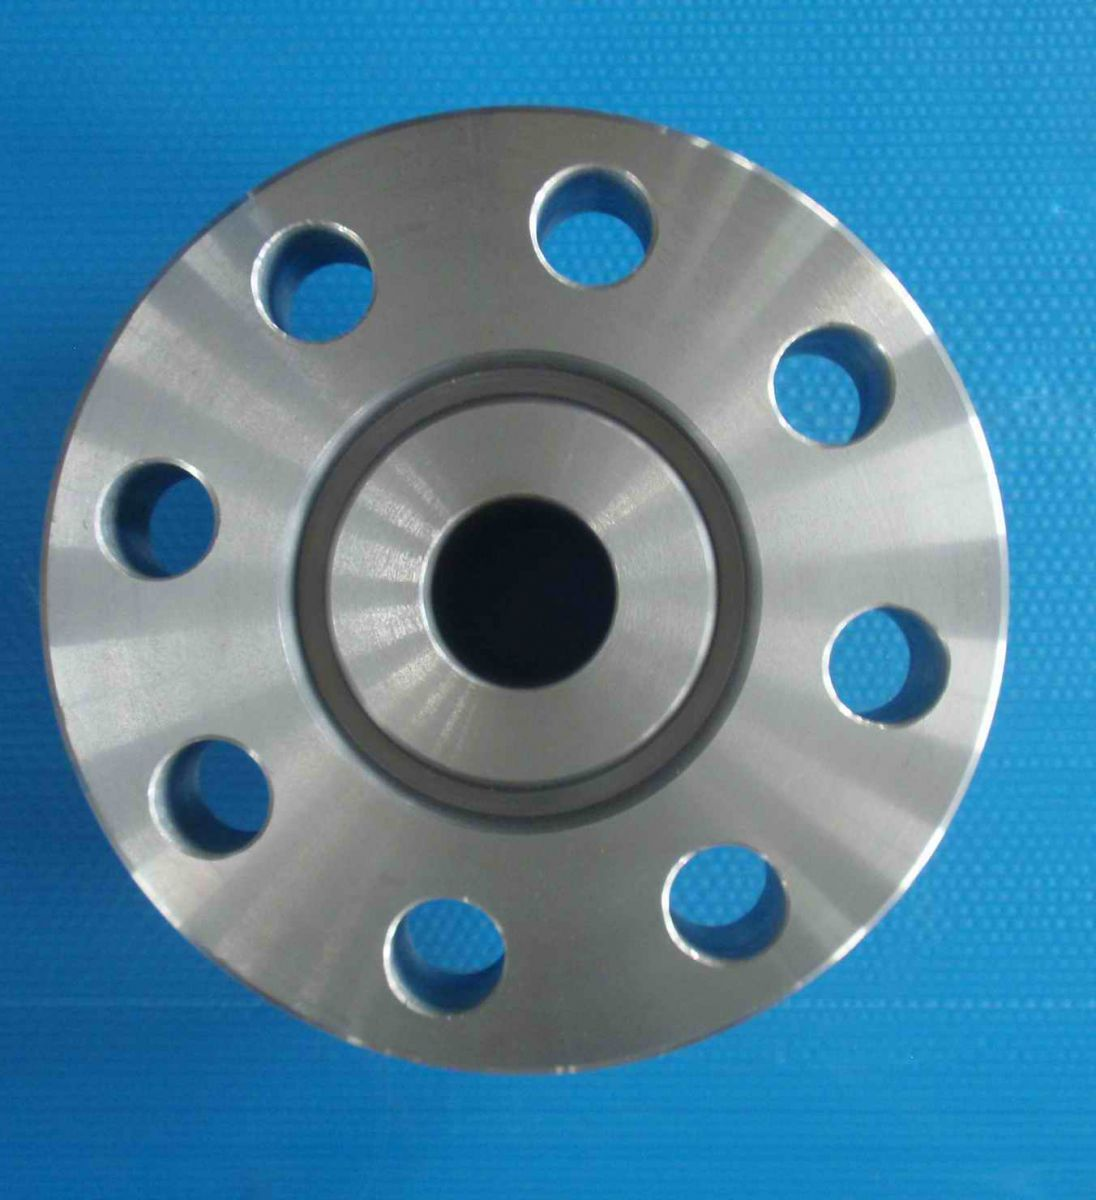 The Causes of Blowholes on Flange Castings and the Process Improvement Measures